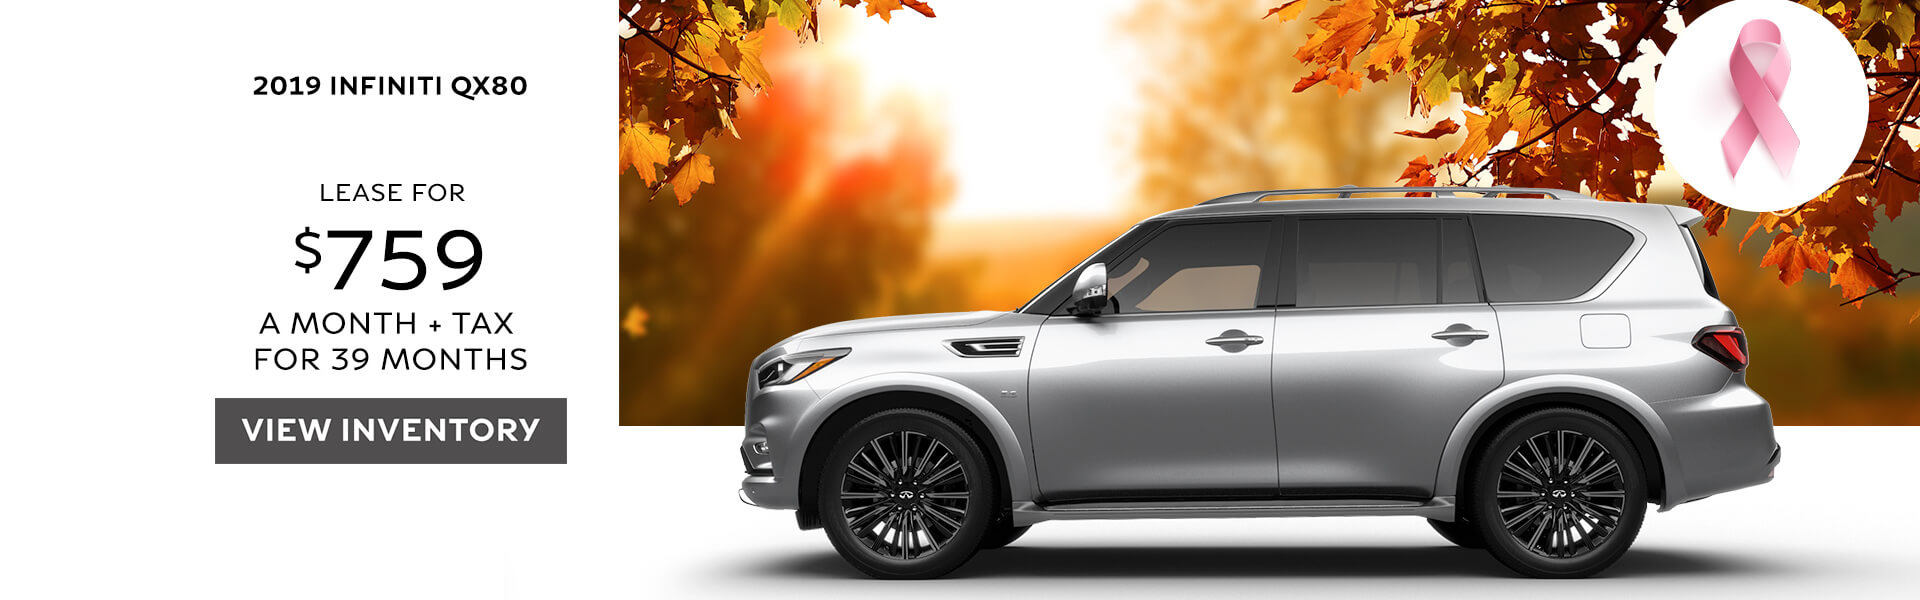 QX80 - Lease for $759